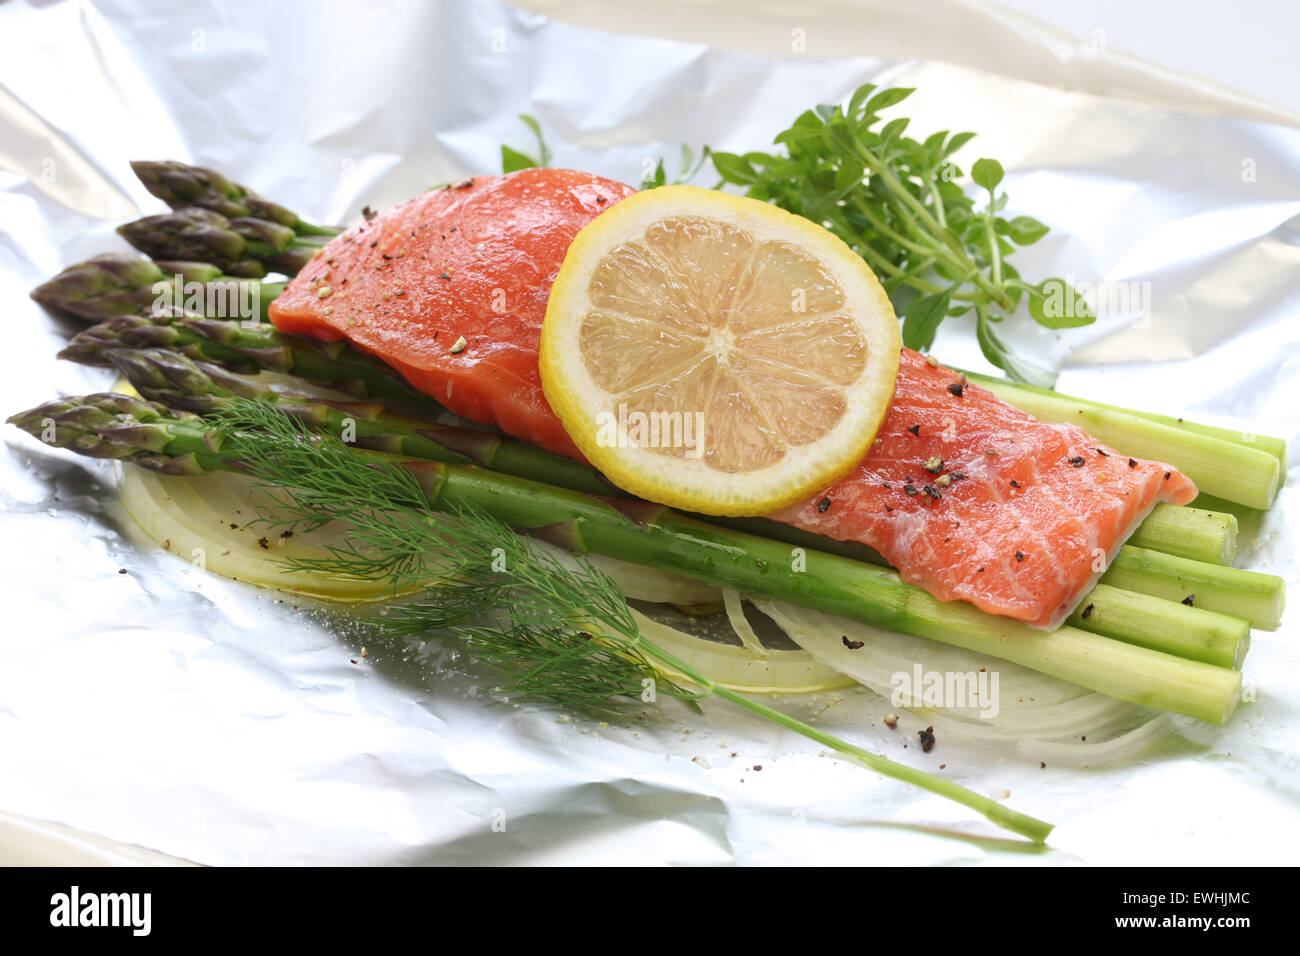 fresh salmon with asparagus in foil paper, ready for cooking - Stock Image